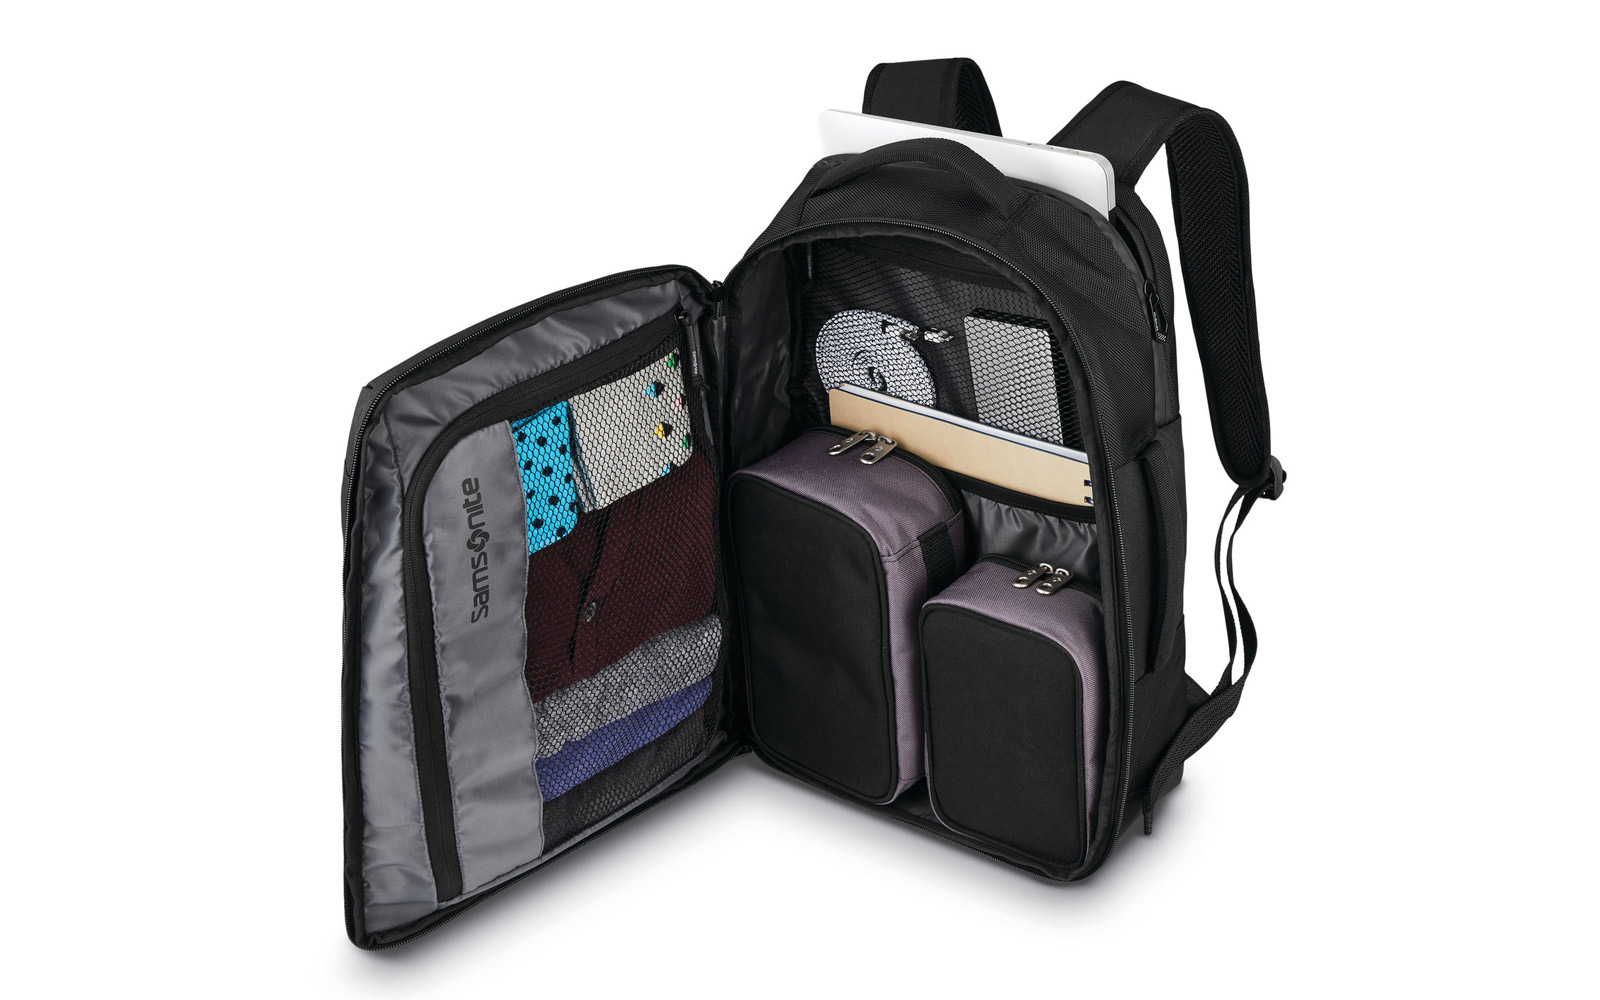 samsonite travel backpack